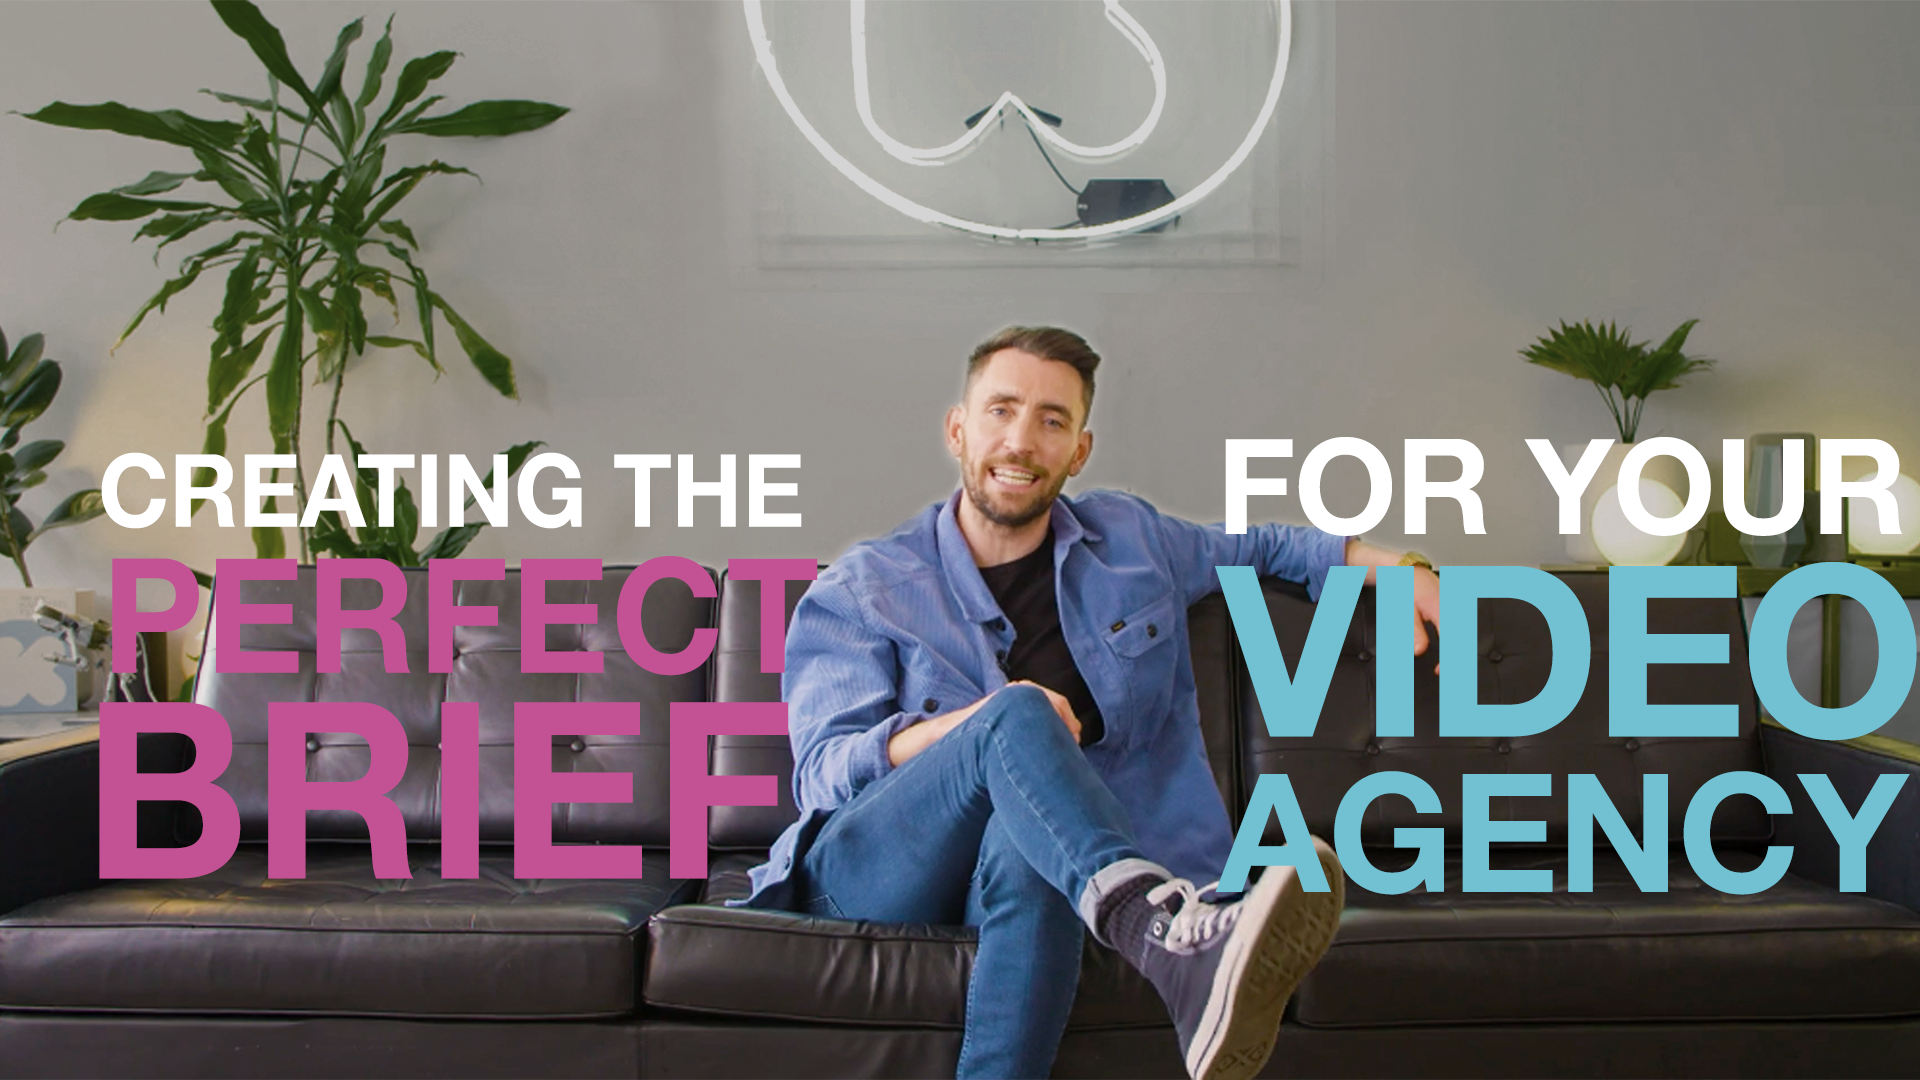 Creating the Perfect Video Brief for Your Agency